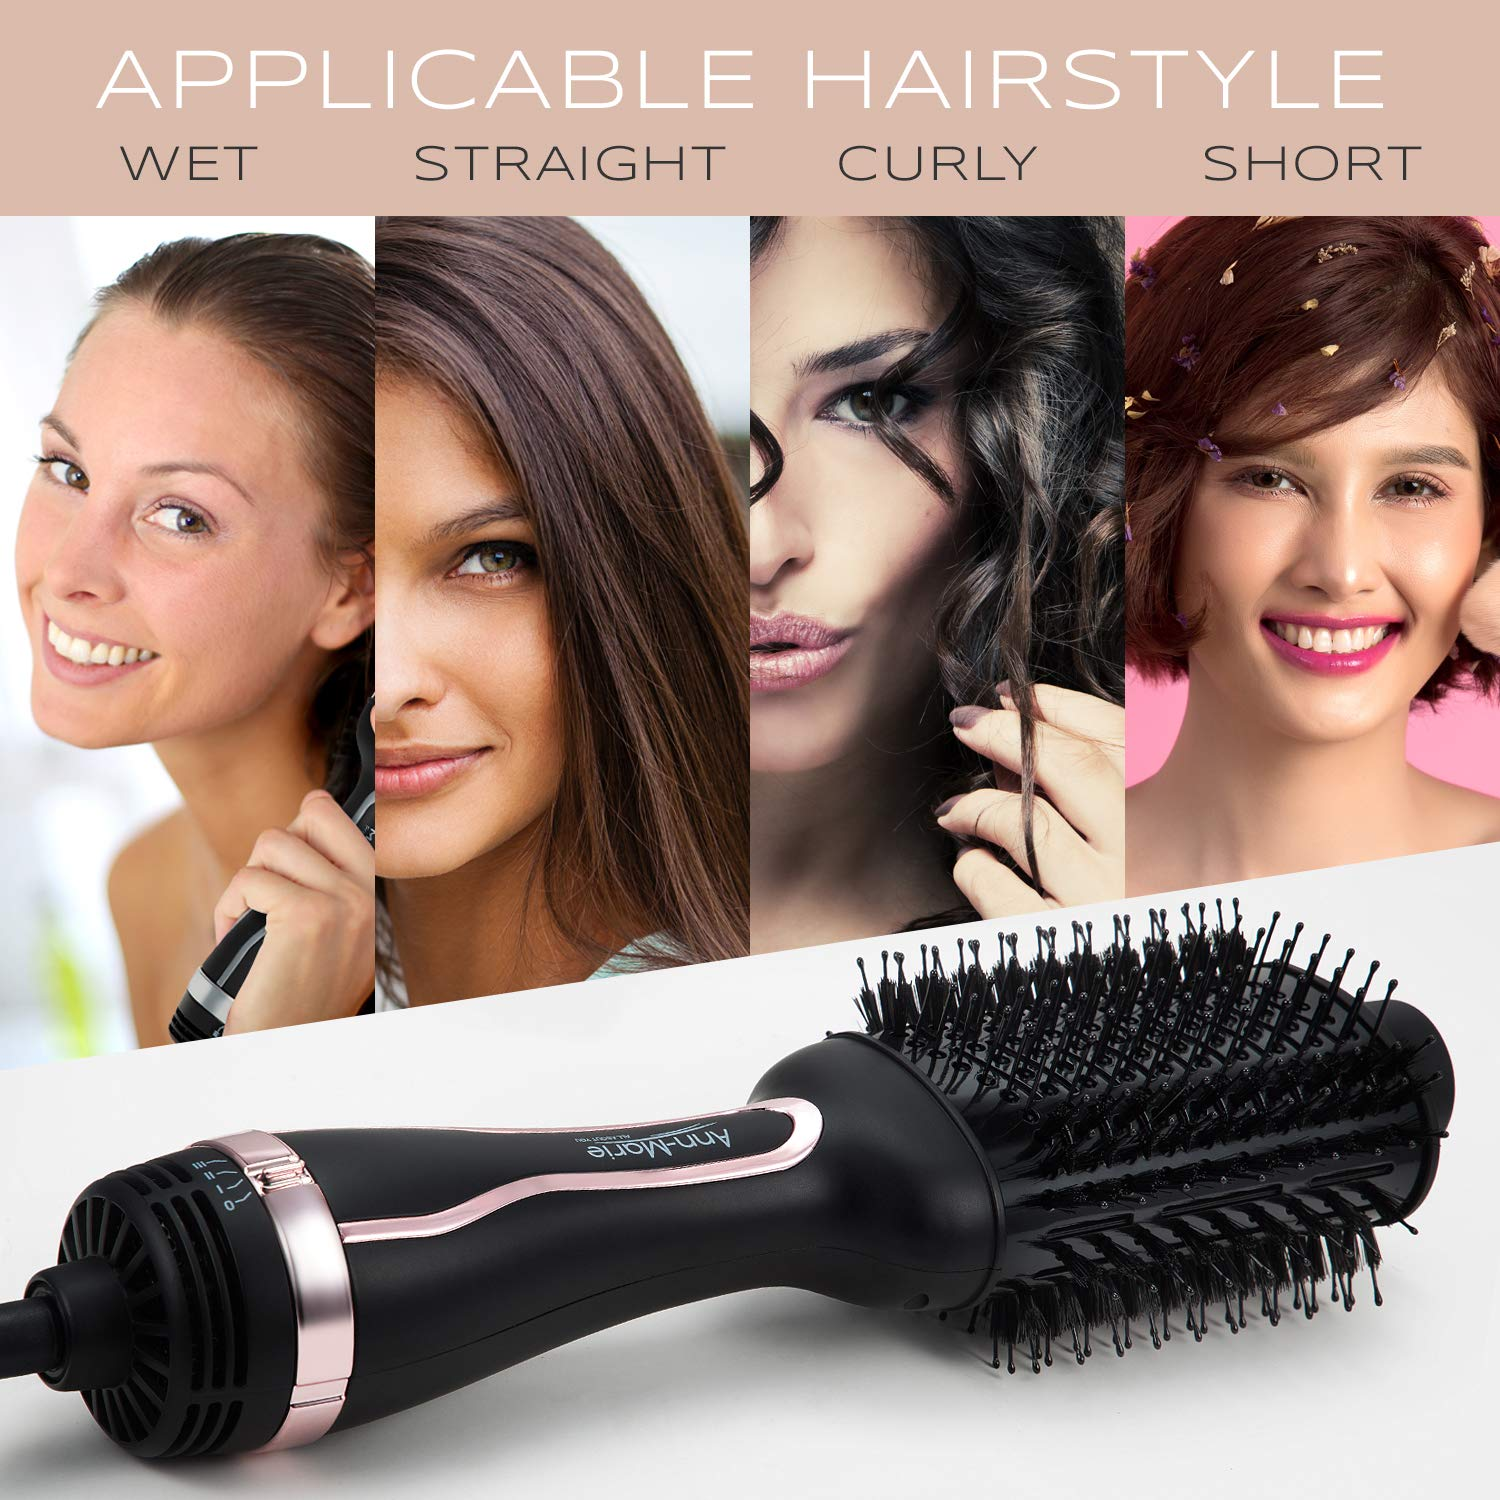 Hair Dryer Brush One Step Hot Air Brush and Volumizer blow dryers Negative Ions Hair Brush Dryer Straightener Styler